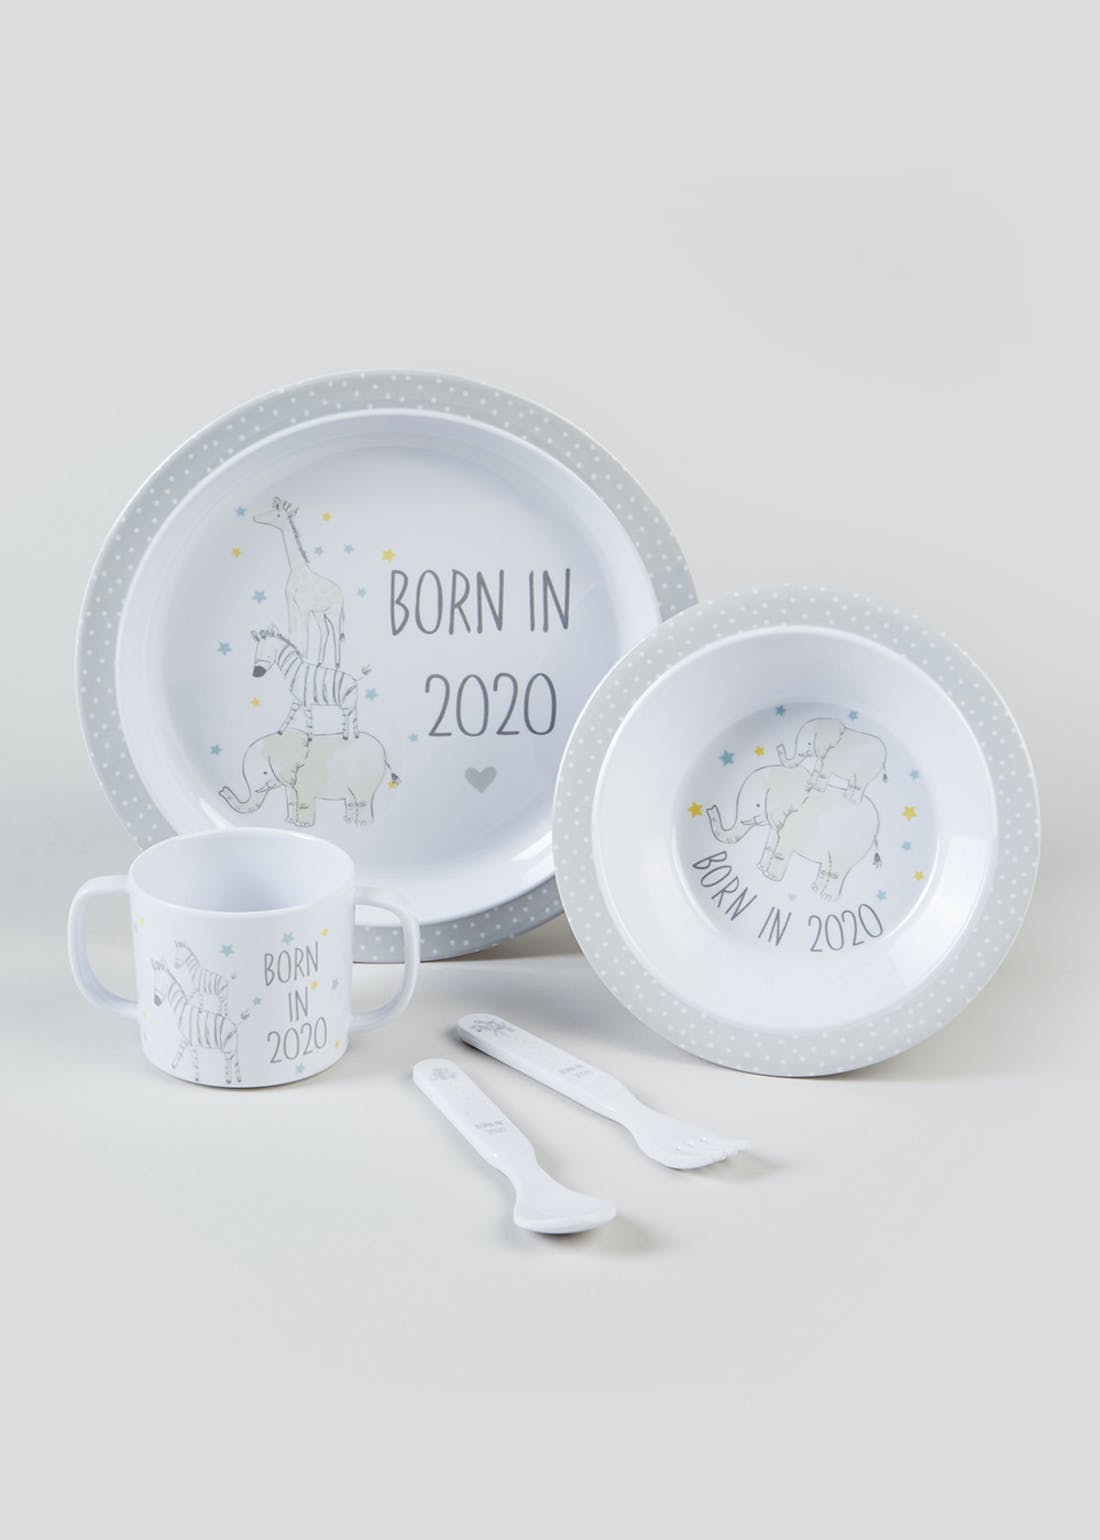 Born in 2020 Baby Plastic Dinner Set